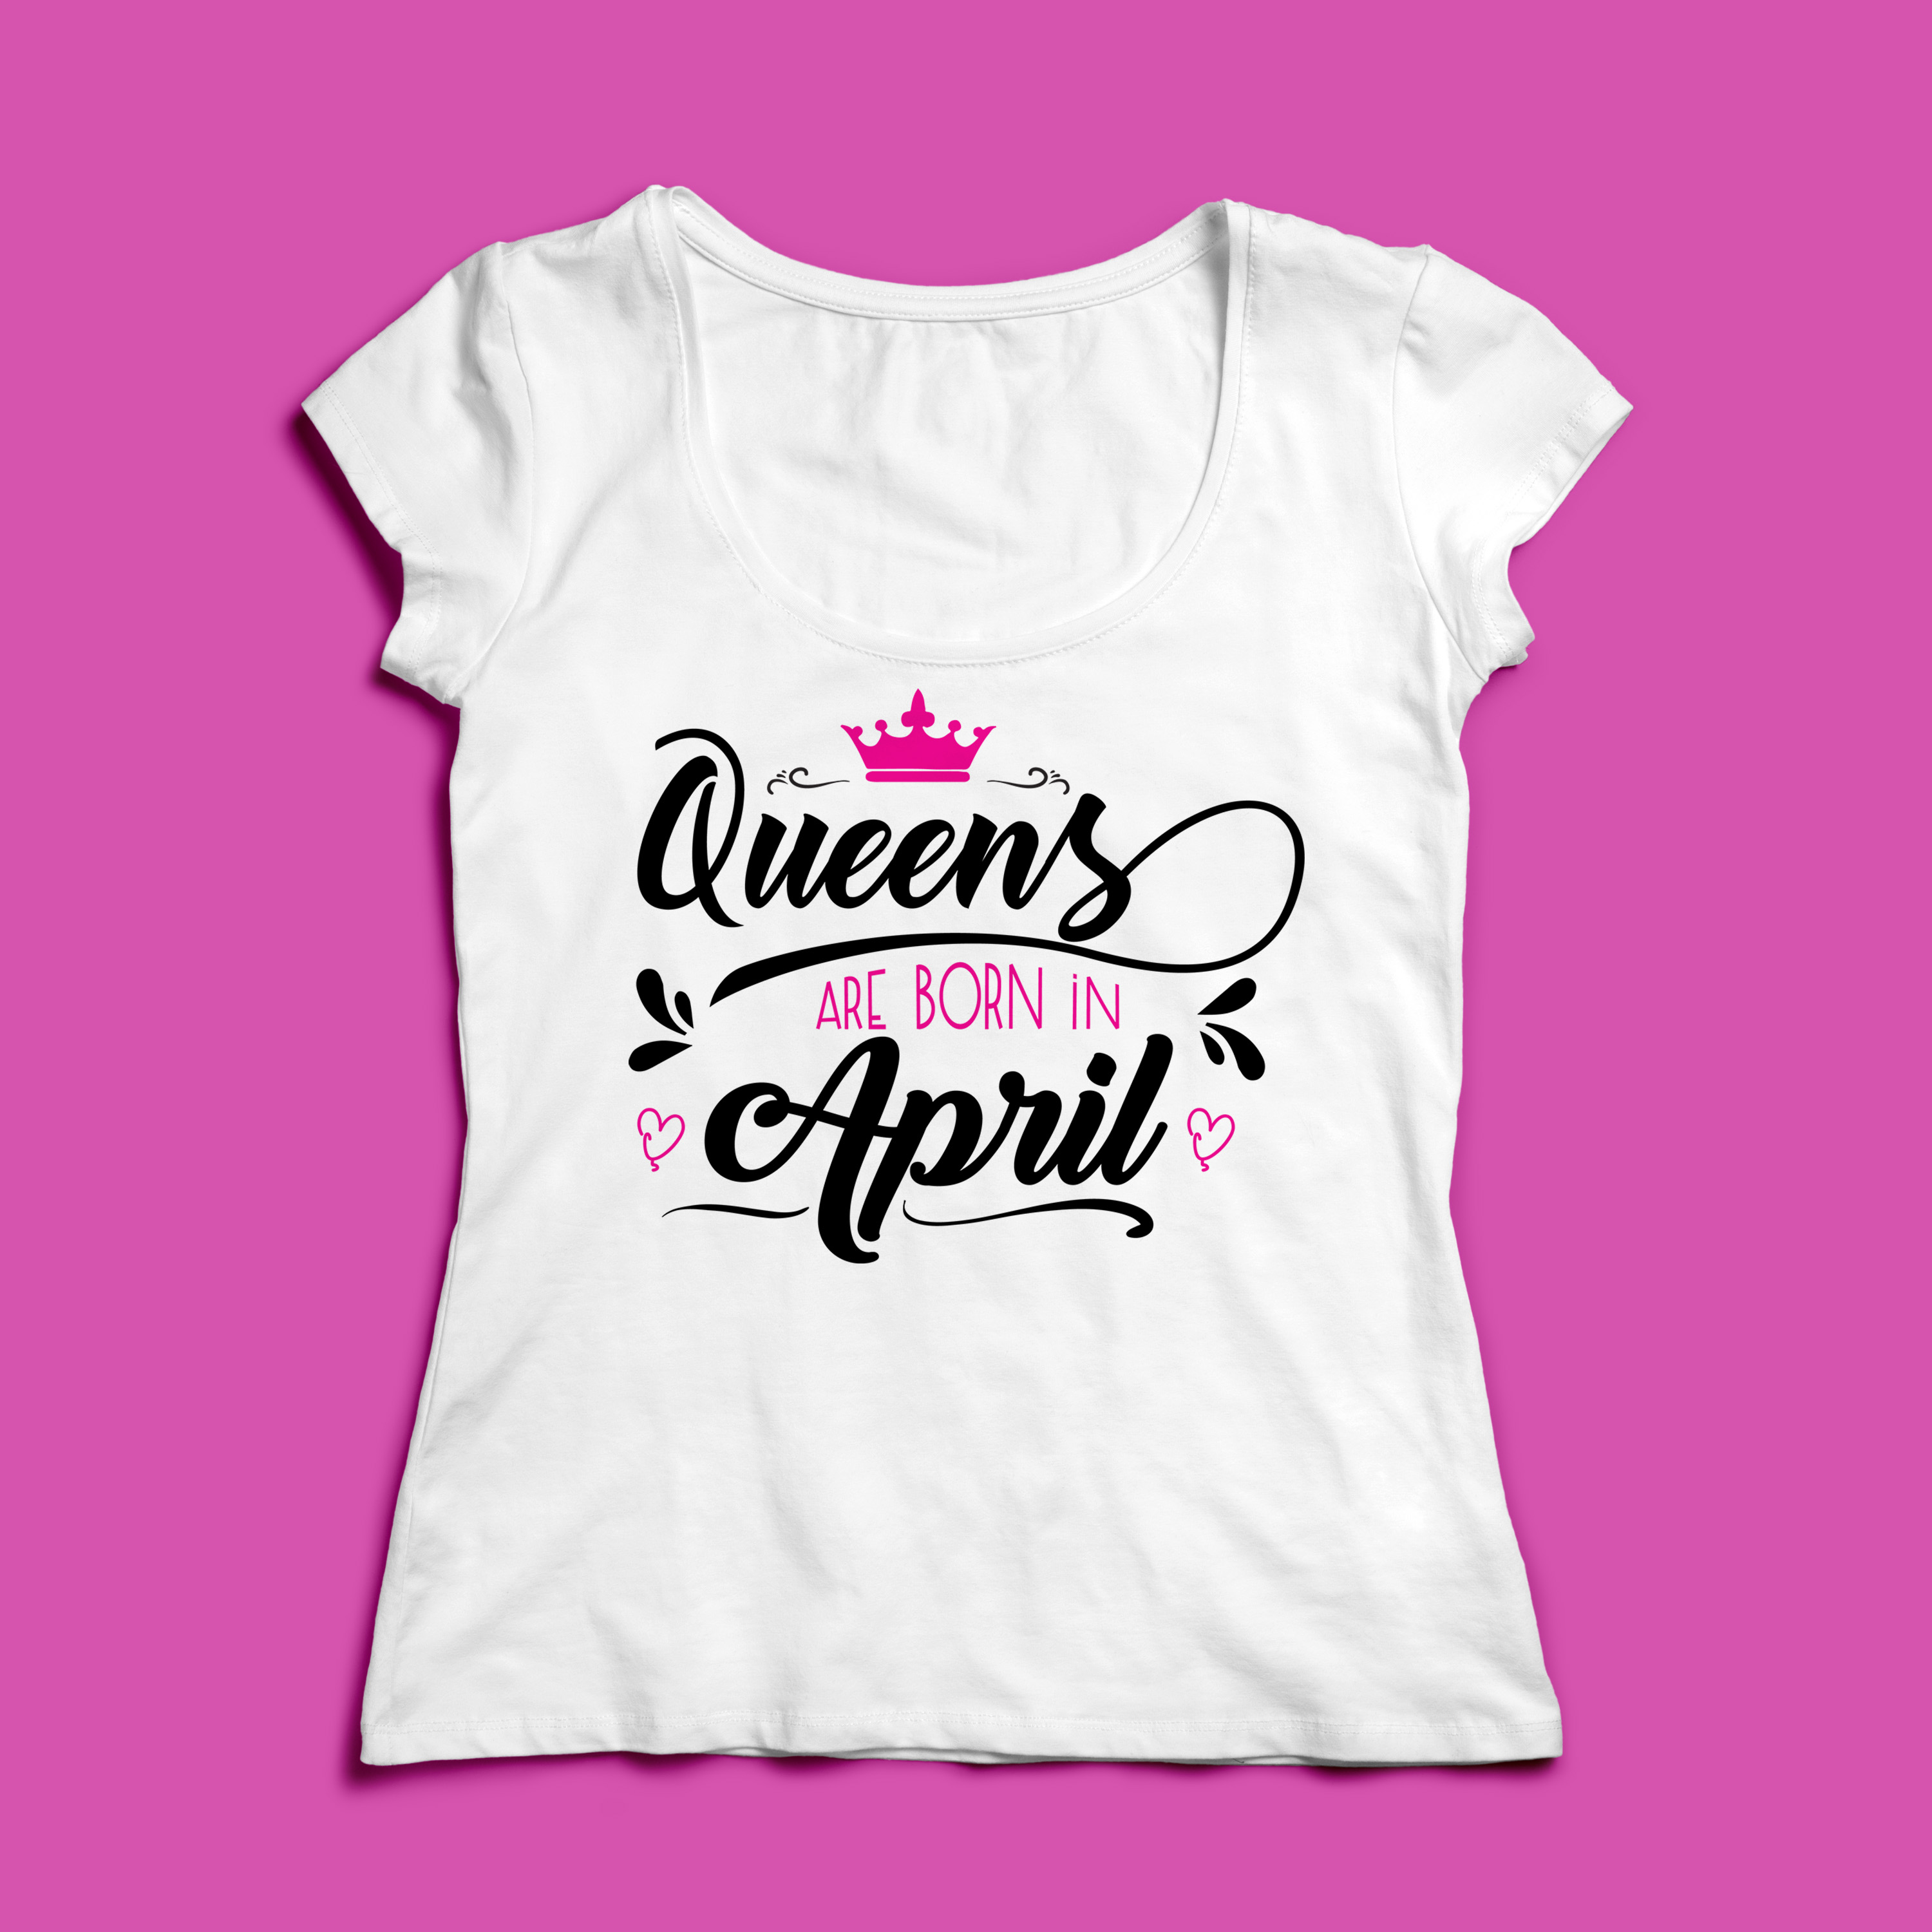 Queens are born in ... Every 12 months Svg,Dxf,Png,Jpg,Eps v example image 2